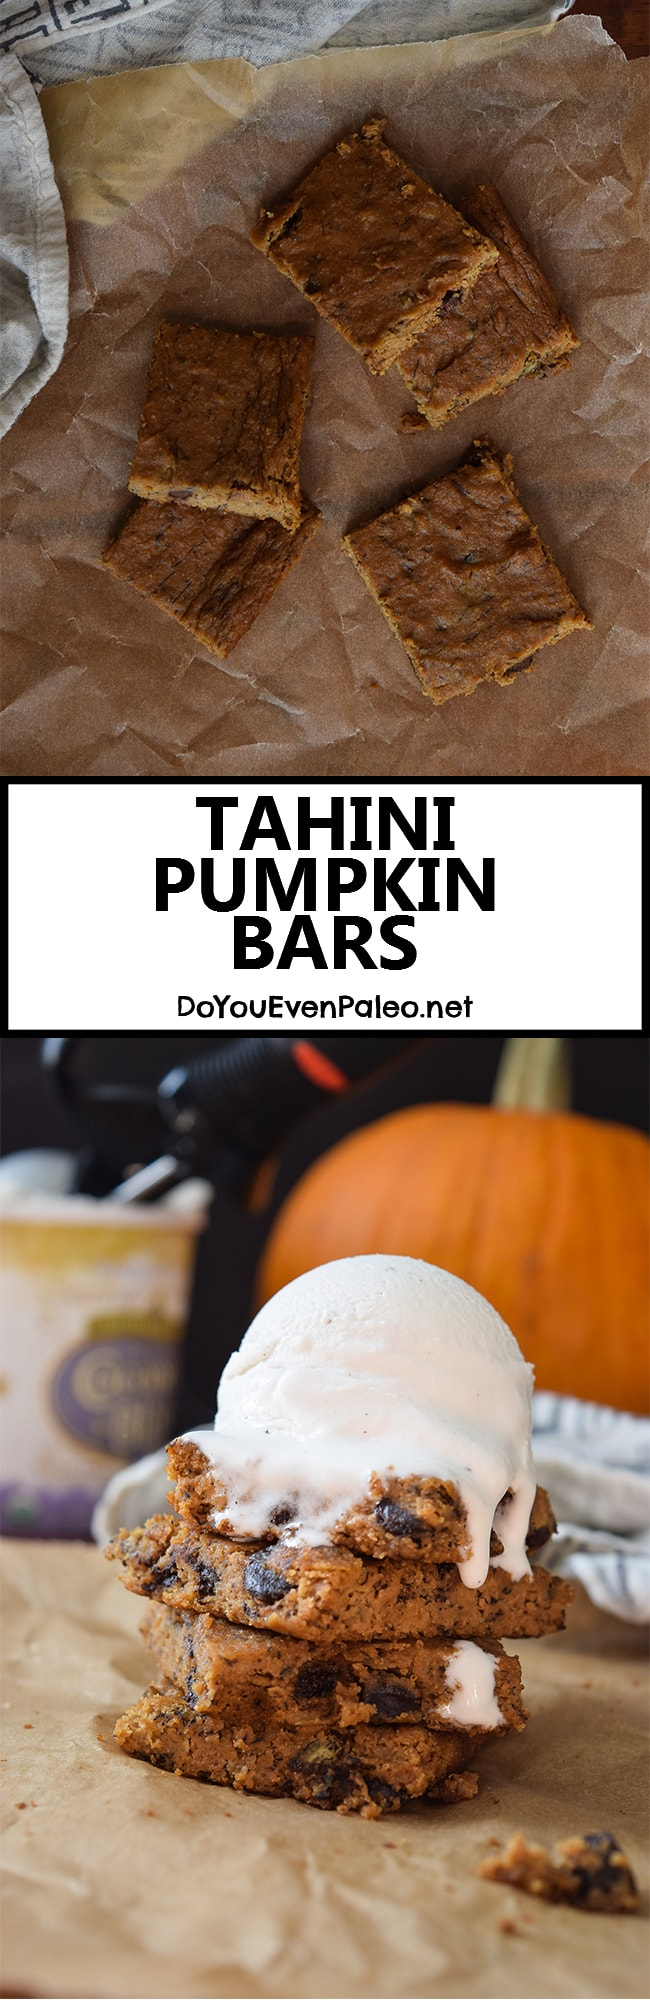 Tahini Pumpkin Bars - not super sweet, but strangely addicting paleo treats. Top with ice cream for bonus points! | DoYouEvenPaleo.net